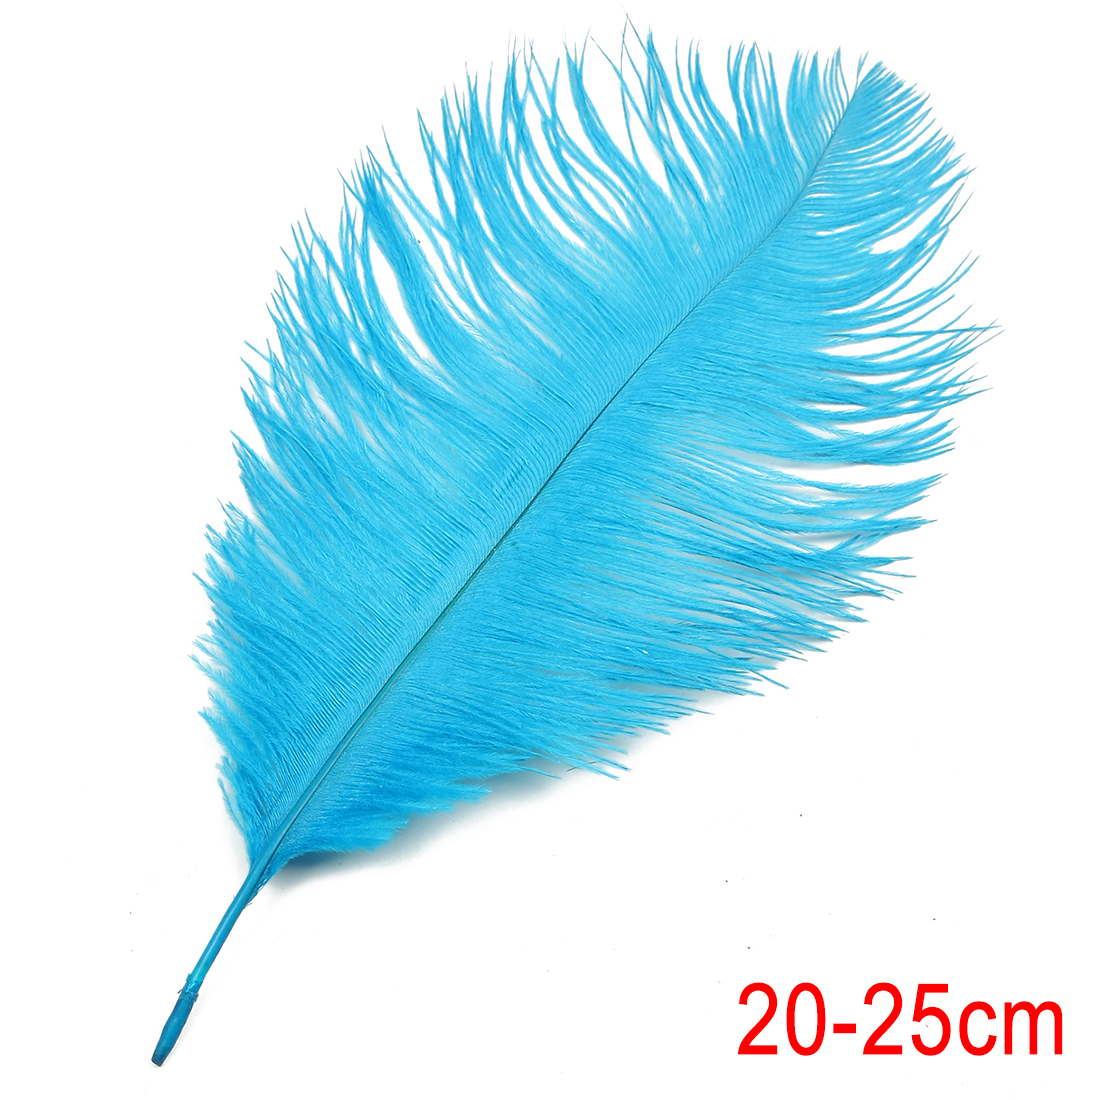 8-10 inch / 20-25cm Ostrich Feather for Wedding Party Decoration Blue